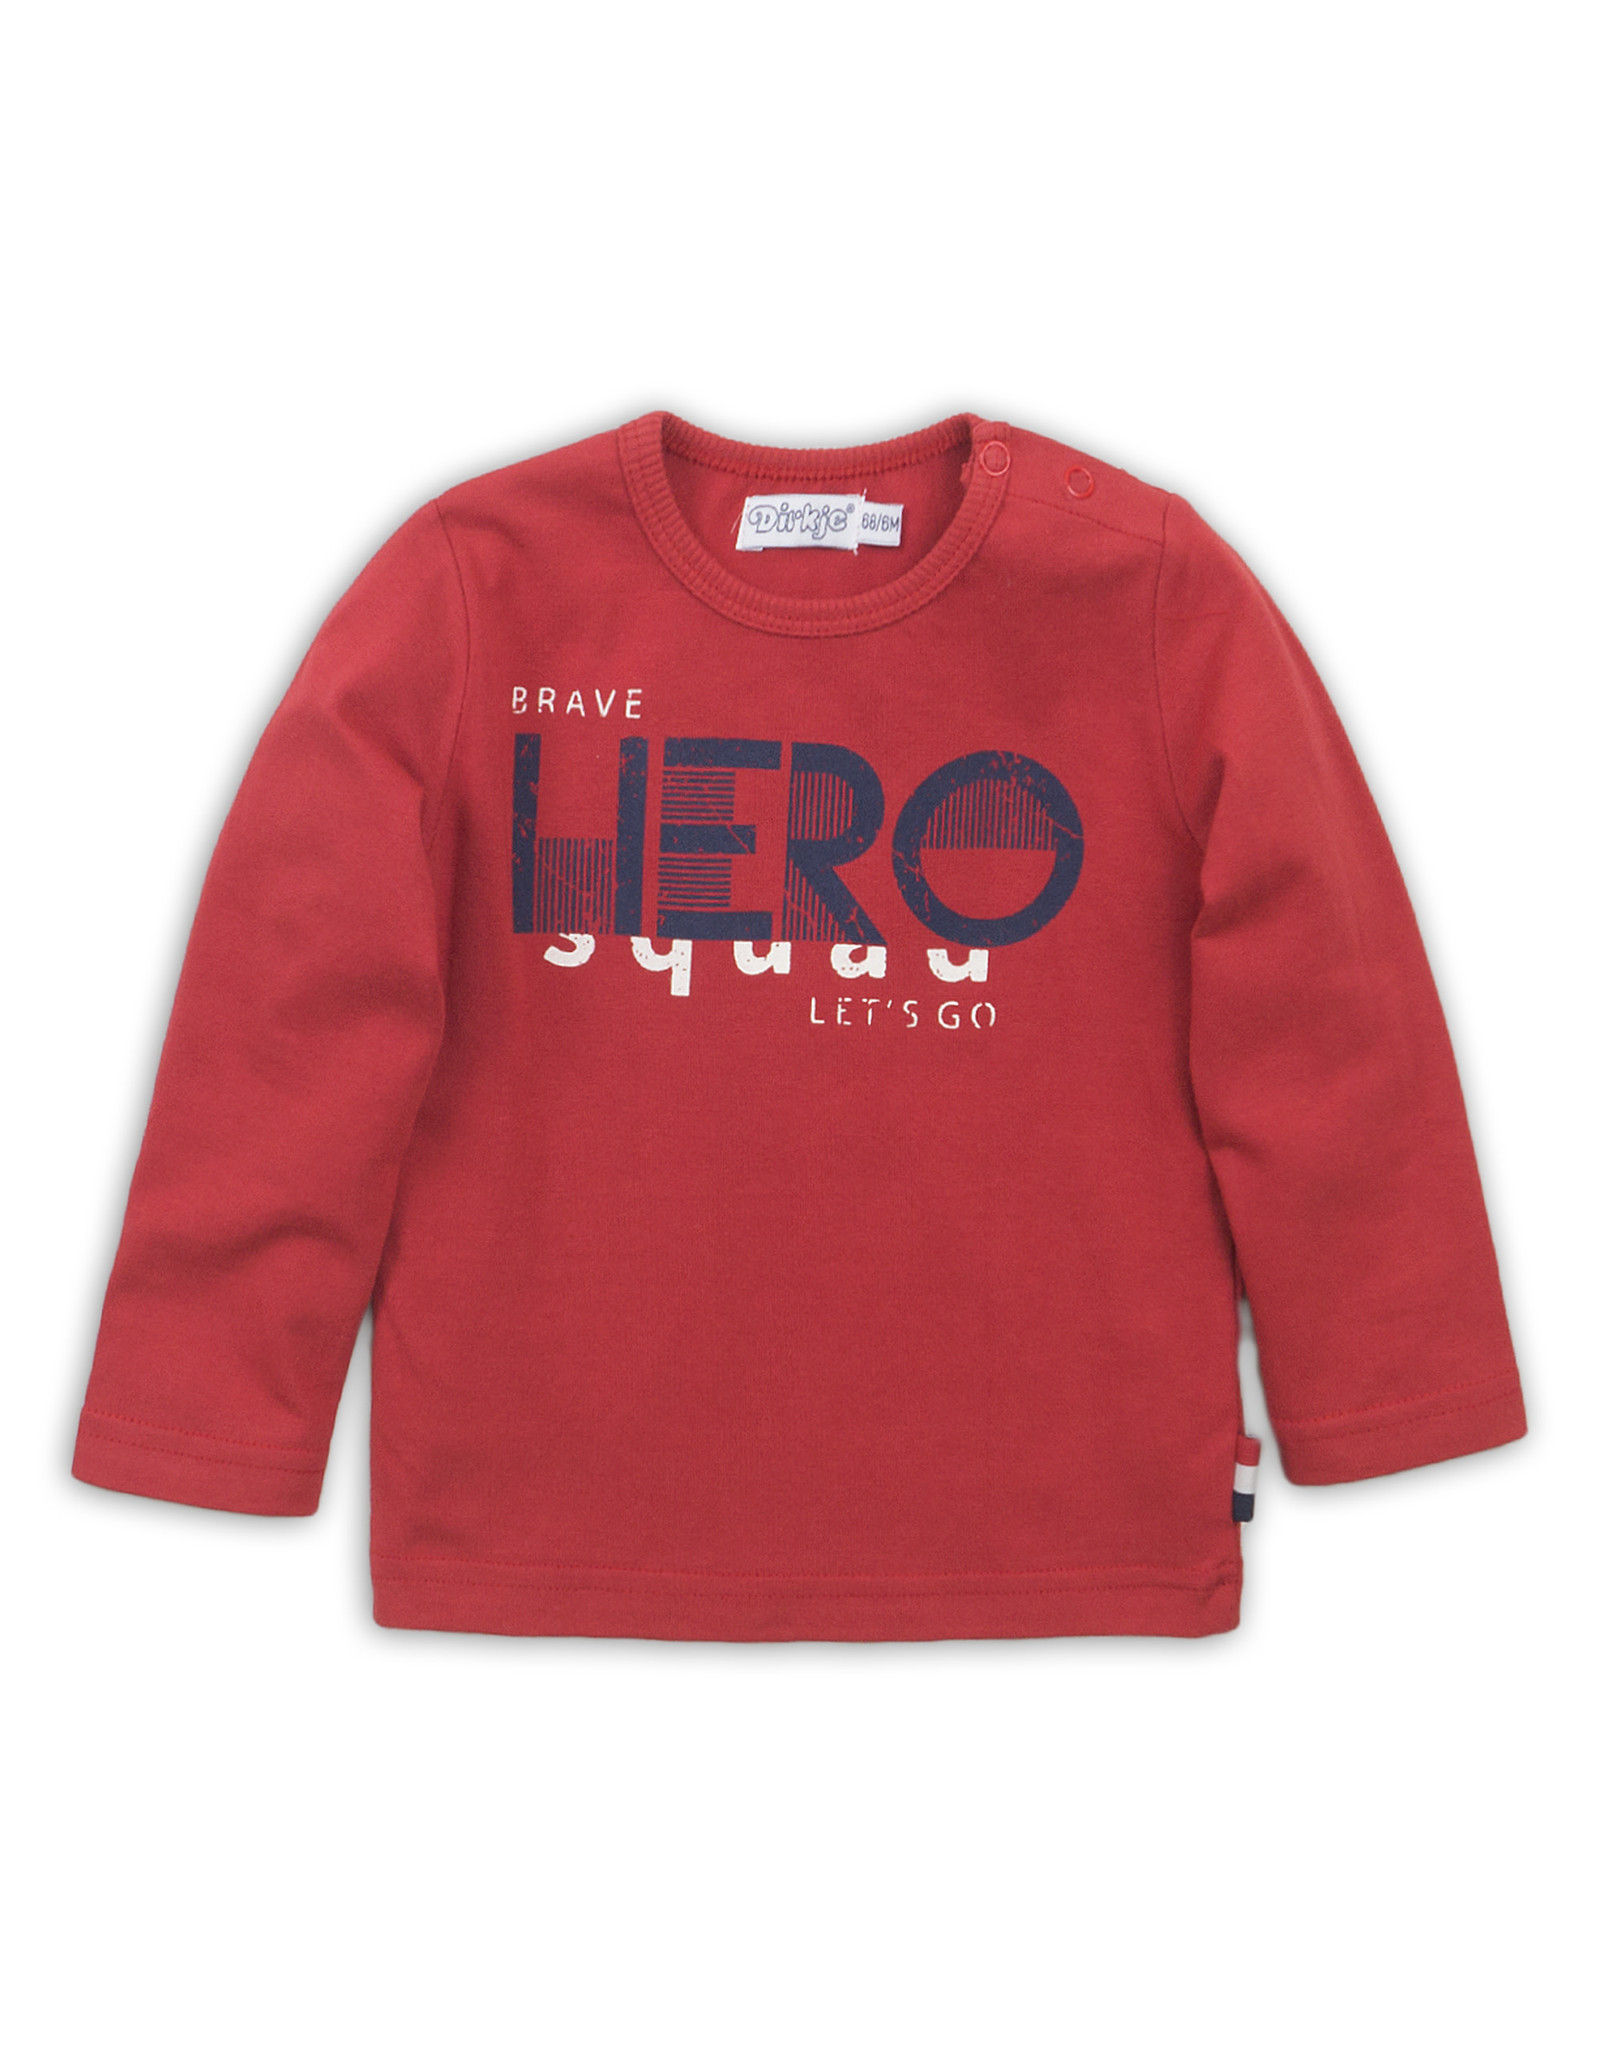 Dirkje Dirkje baby jongens shirt Red Hero